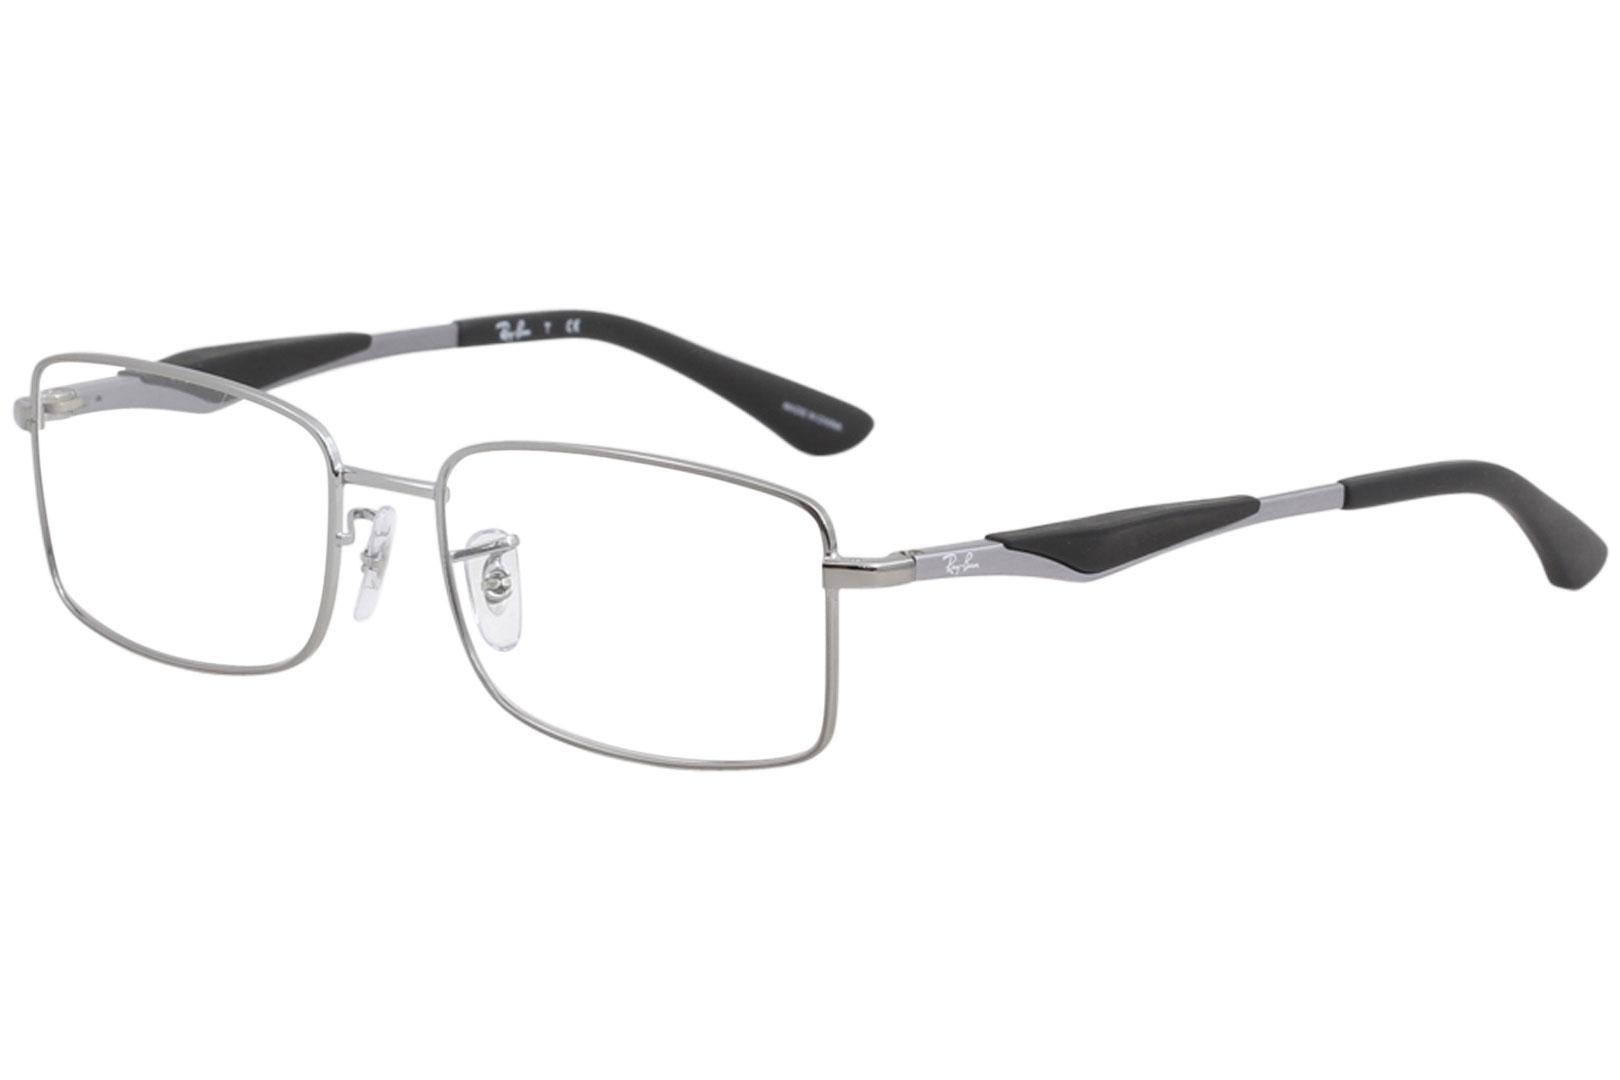 0668db4fd4df Ray Ban Men s Eyeglasses RX6284 RB 6284 RayBan Full Rim Optical Frame